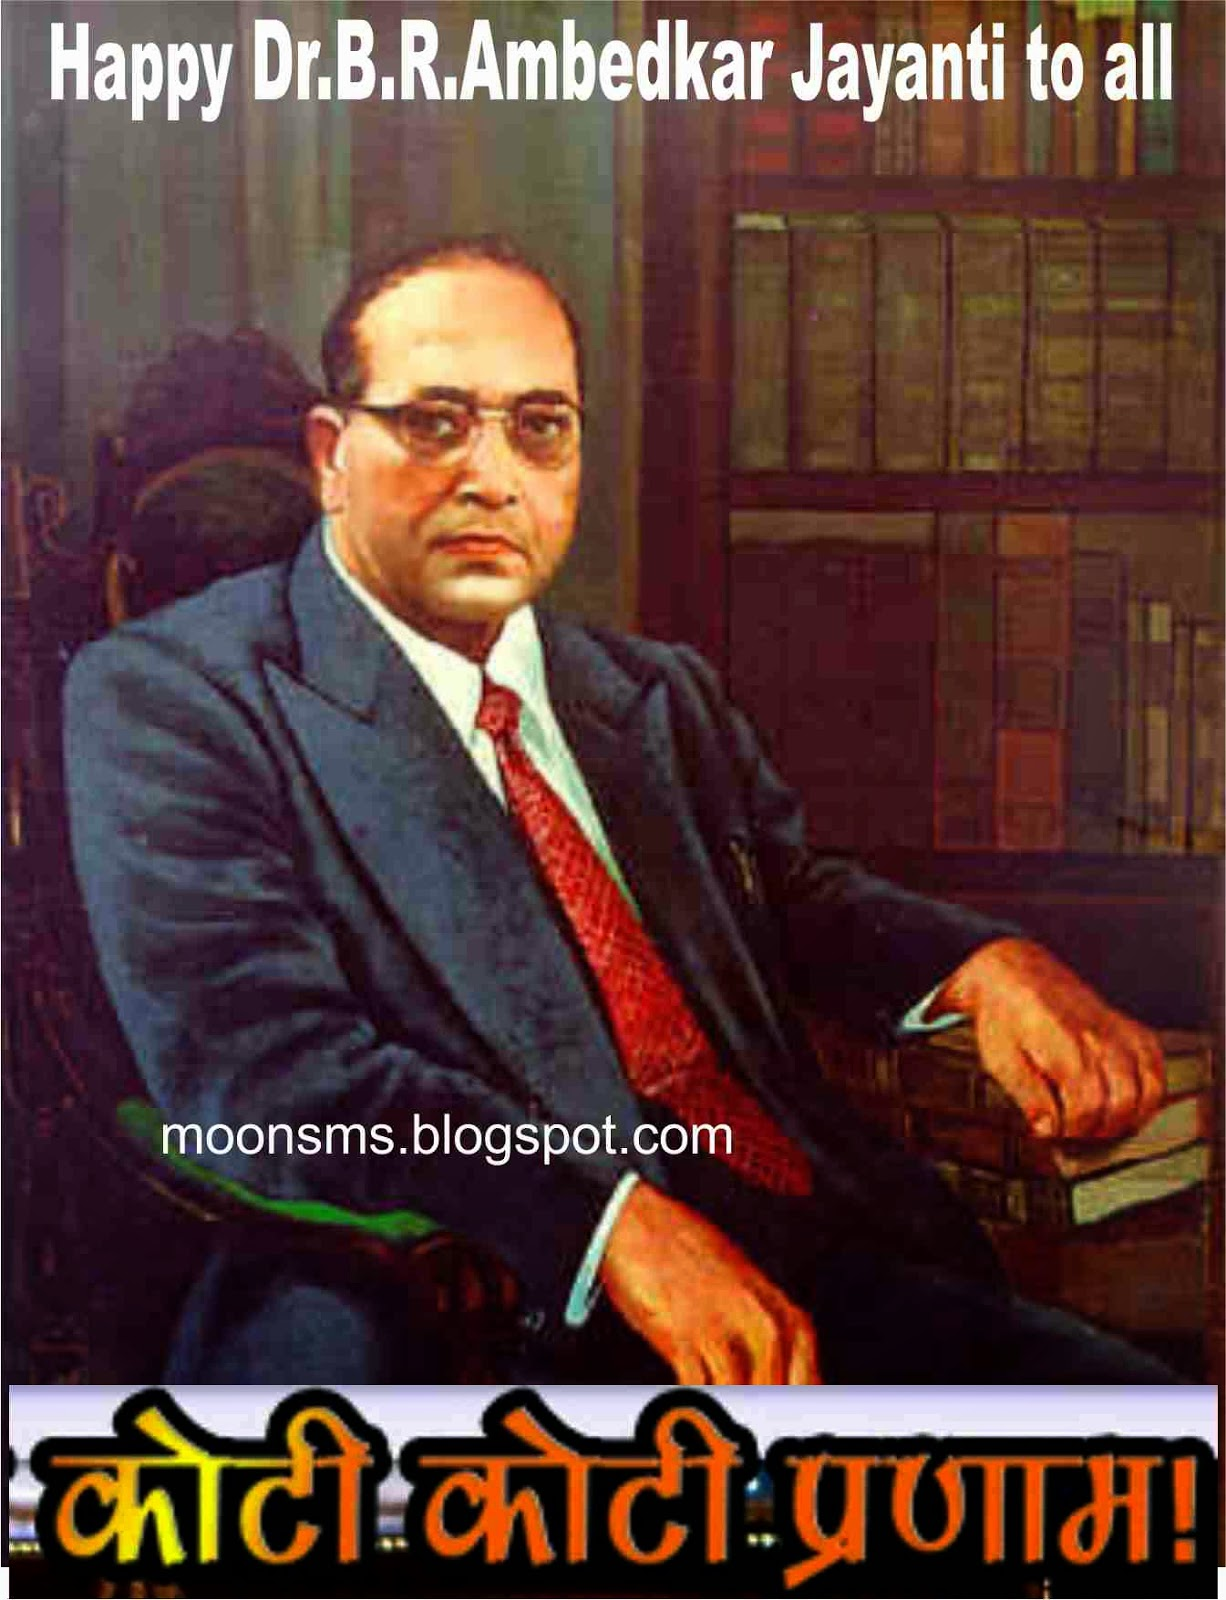 all about babasaheb ambedkar Writings & speeches of dr babasaheb ambedkar dr babasaheb ambedkar  writings & speeches vol 1 pdf file that opens in new window.